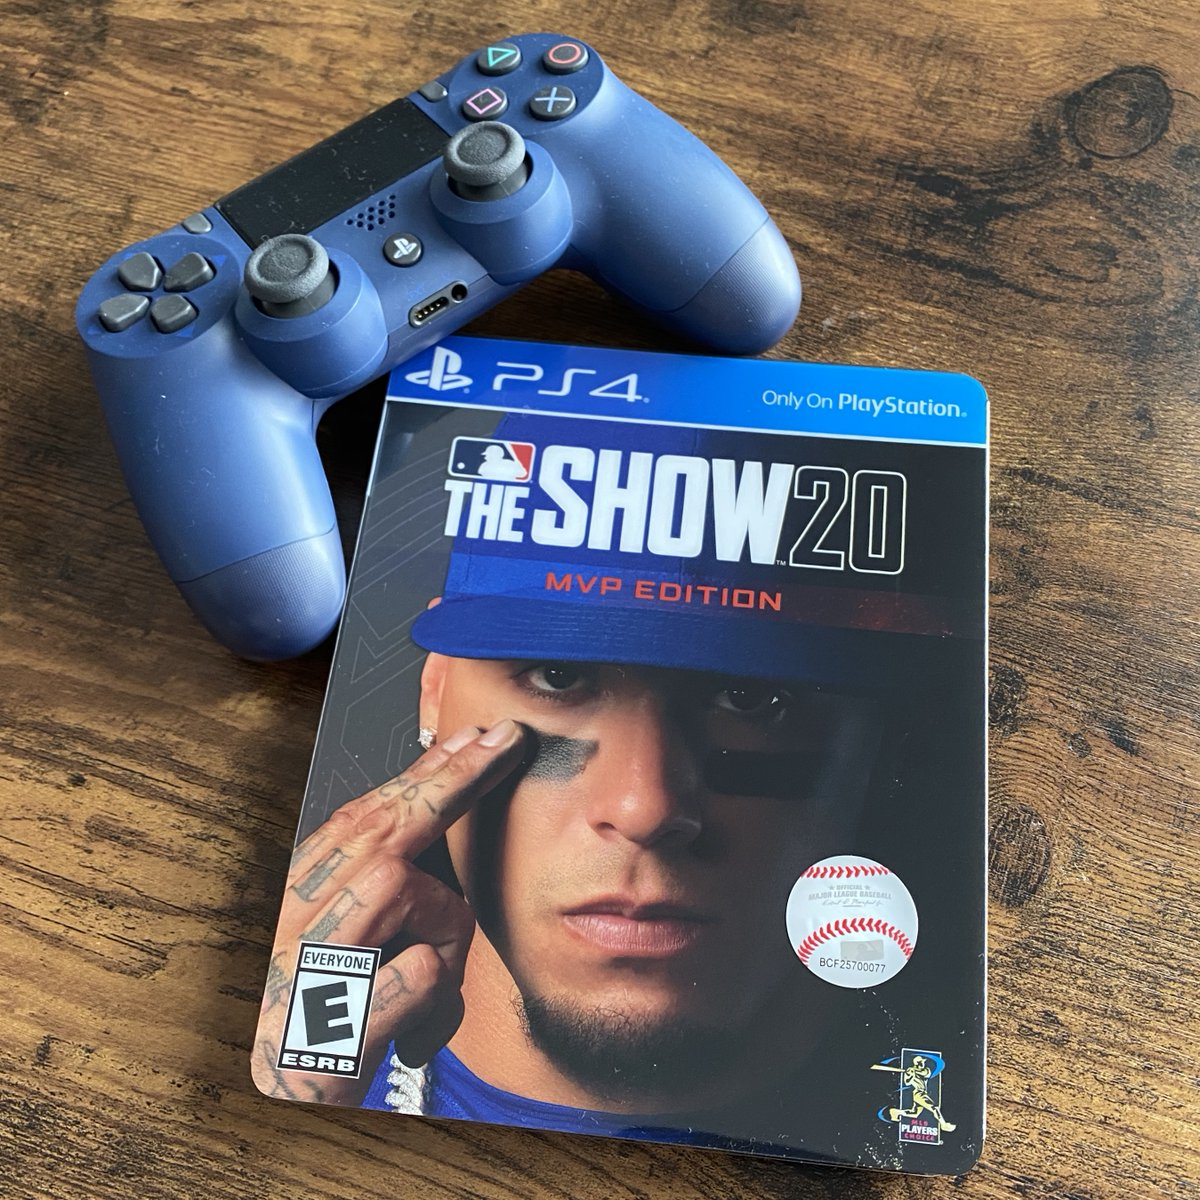 Don't worry, you can still join me in Early Access and play @mlbtheshow NOW (before everyone else at launch on 3/17). All the Collector's Editions will get you in early! 🎮 theshow.gg/MLB20mvp #mlbtspartner #mlbtheshow #theshow20 #welcometotheshow